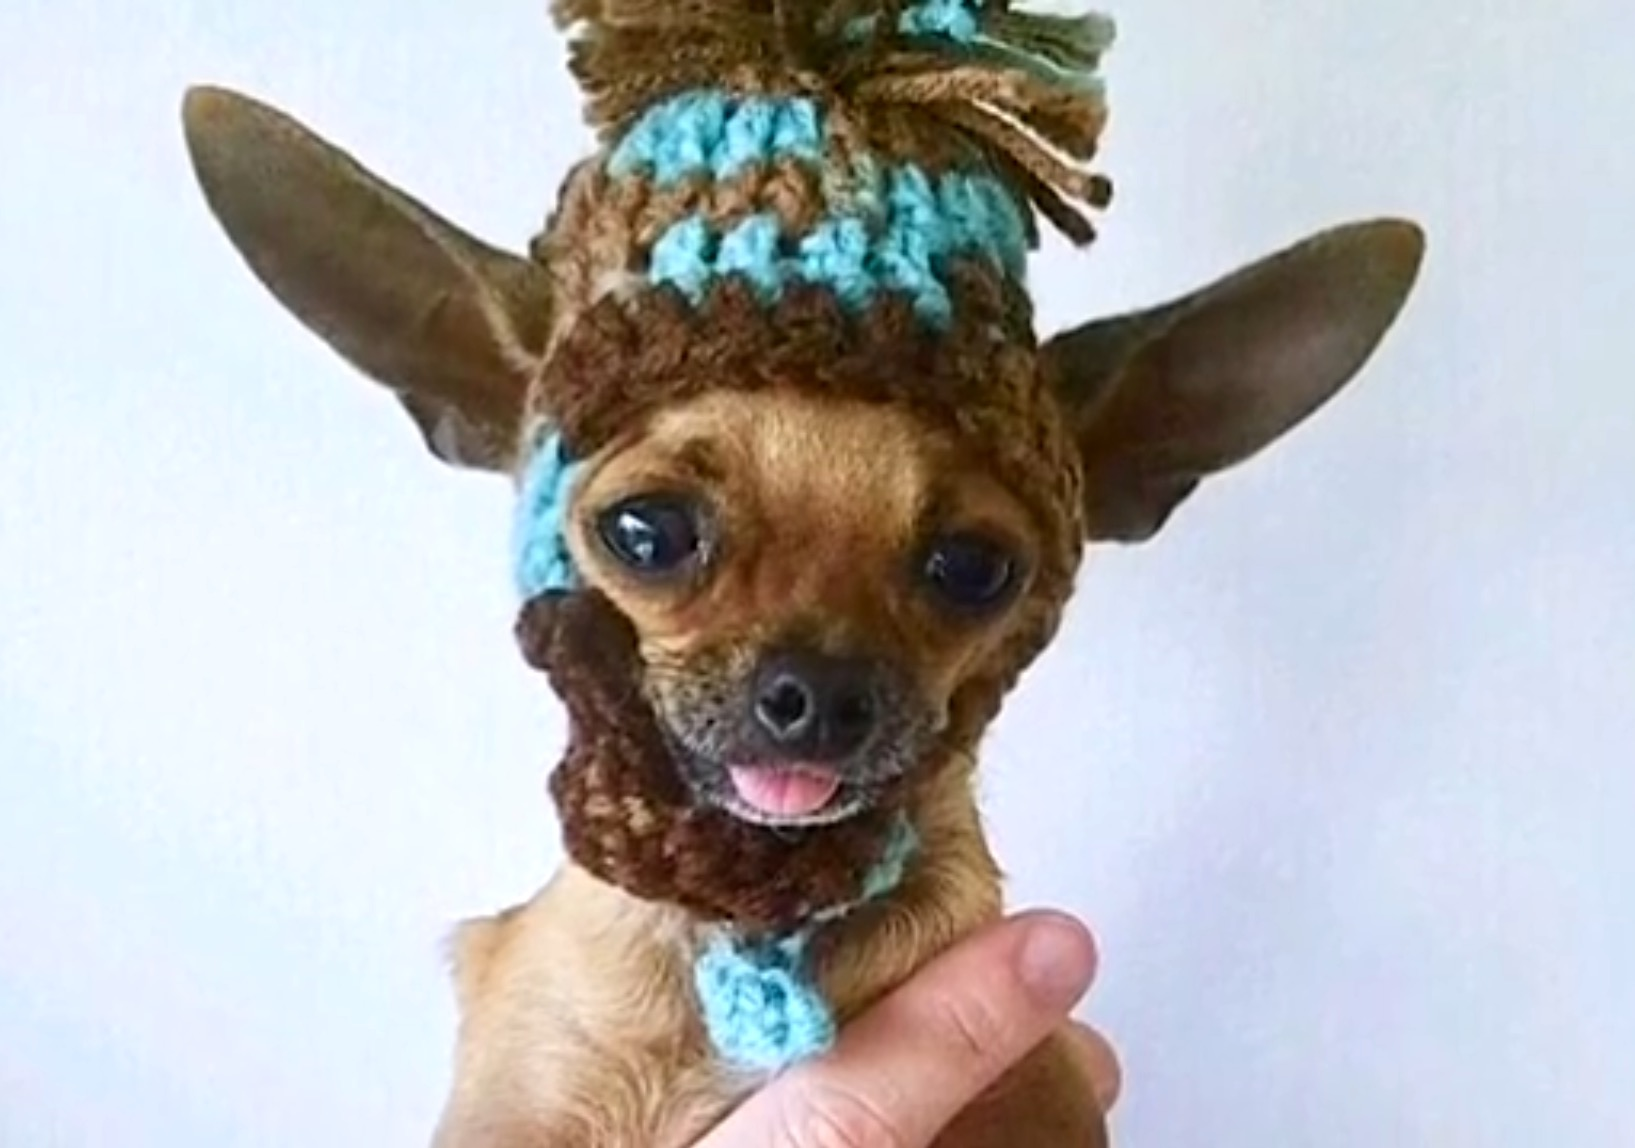 Heartbreaking Video Of Teacup Chihuahua With Neurological Disorder Shows Us Why Breeding Dogs Is Irresponsible One Green Planet